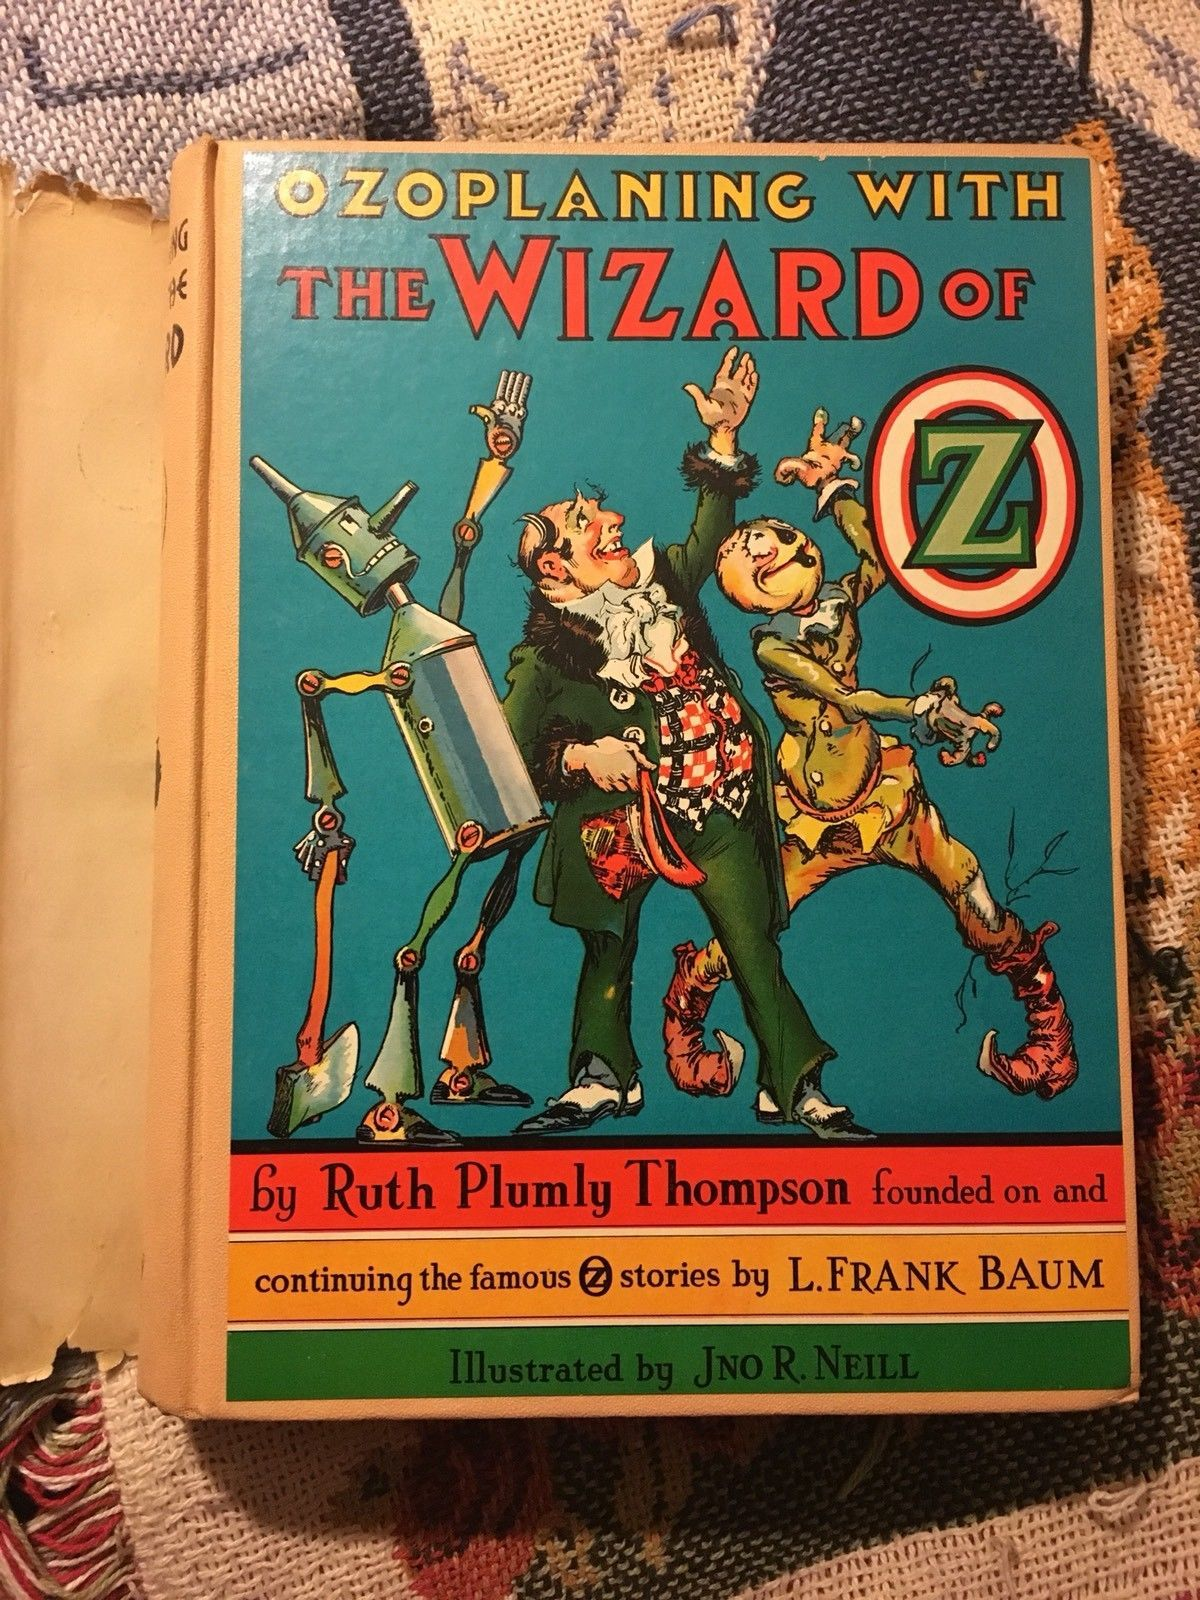 Ruth Plumly Thompson - Ozoplaning With the Wizard of Oz 1939 1st In dust jacket